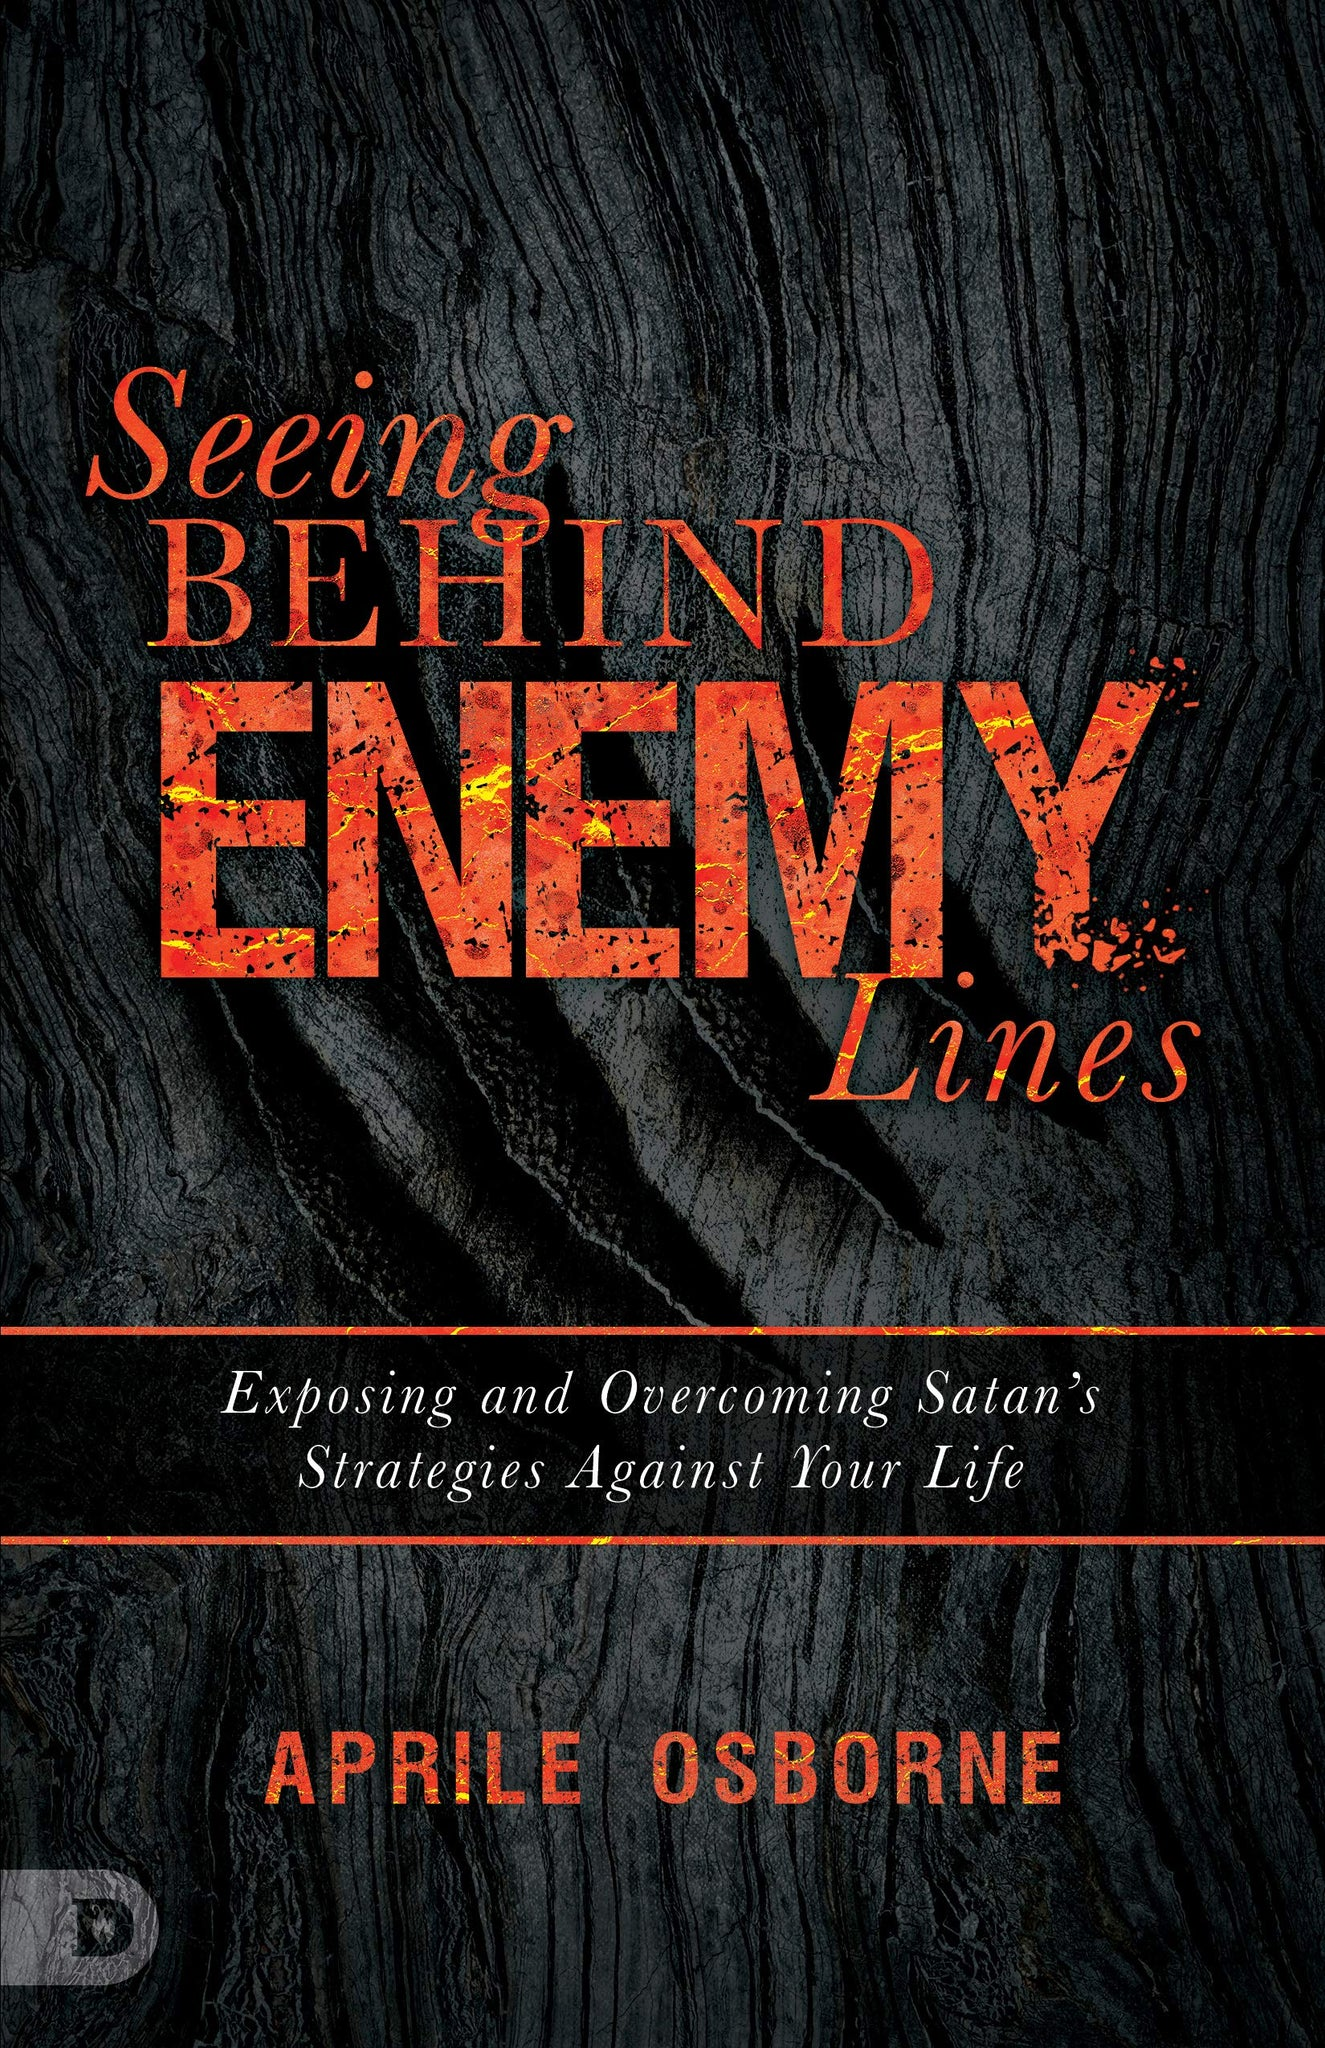 Seeing Behind Enemy Lines: Exposing and Overcoming Satan's Strategies Against Your Life (Paperback)